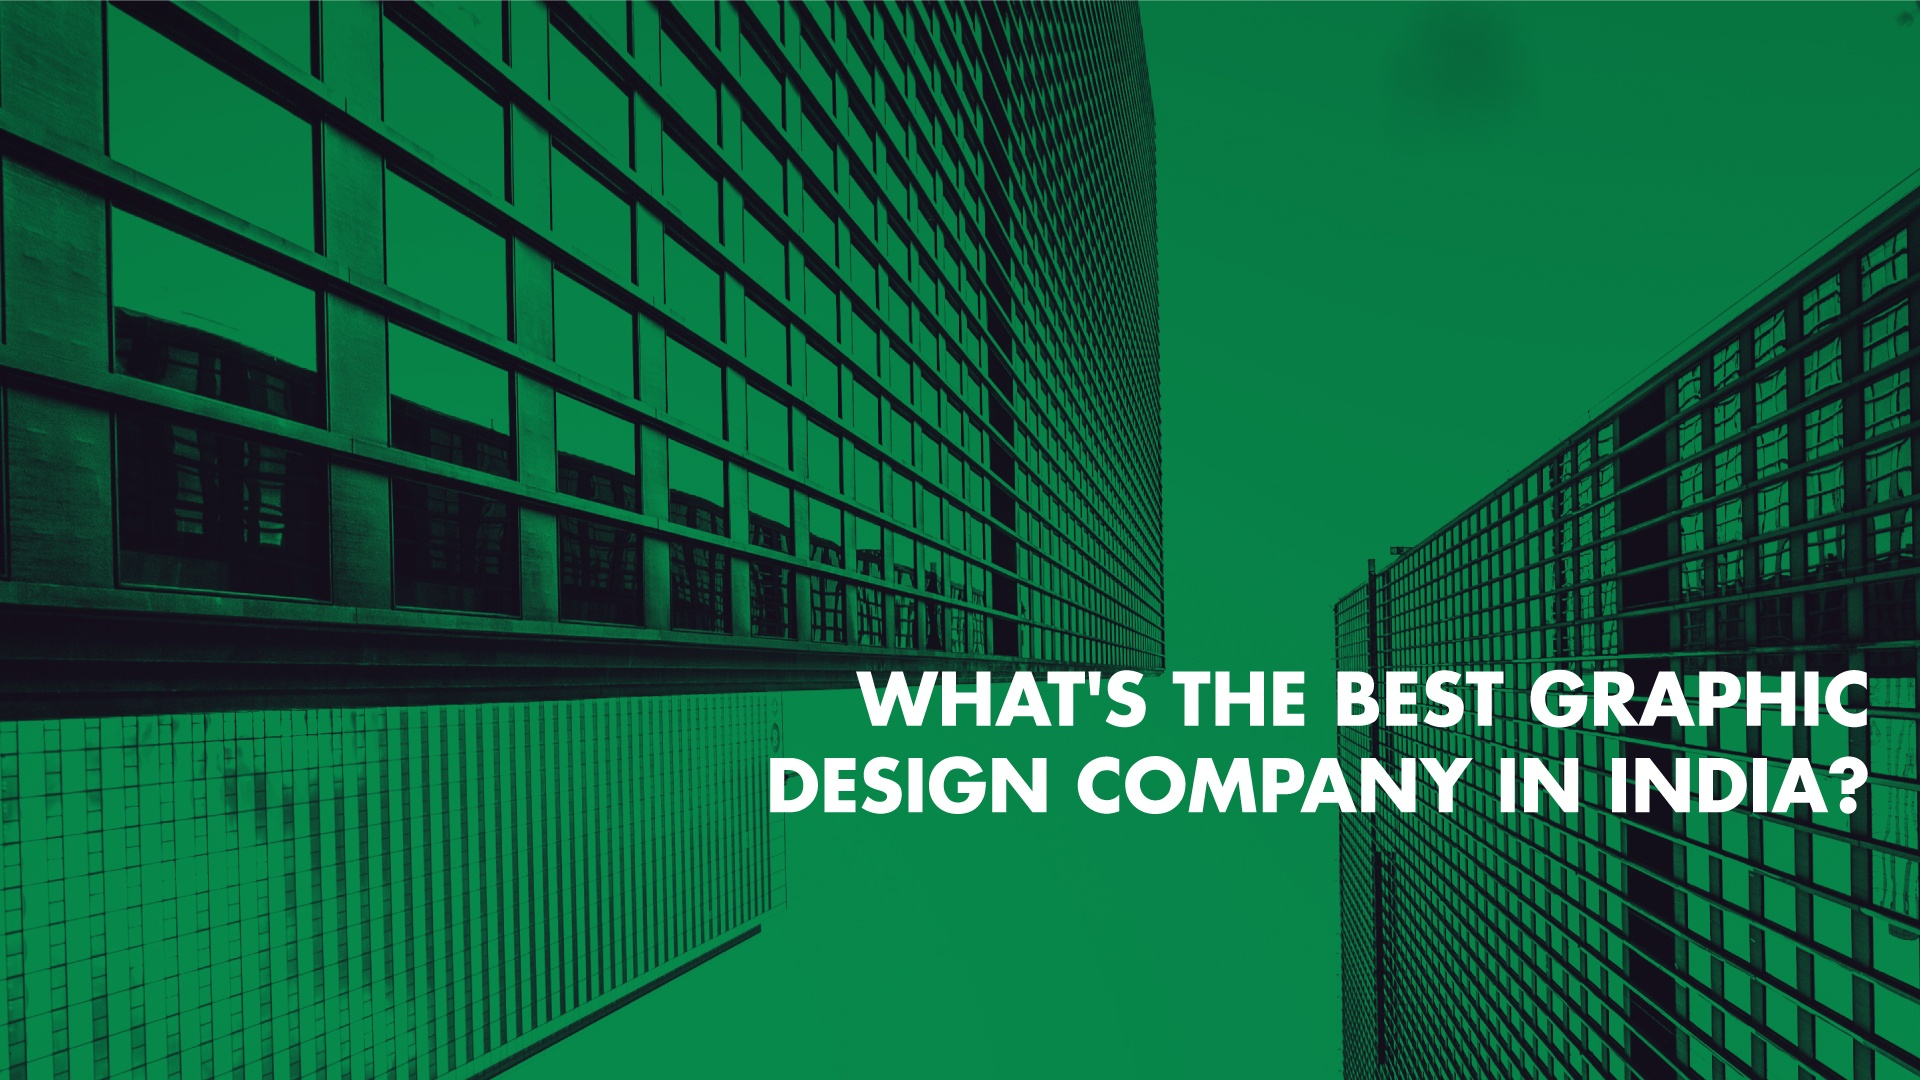 What's the best graphics design company in India? - Quora